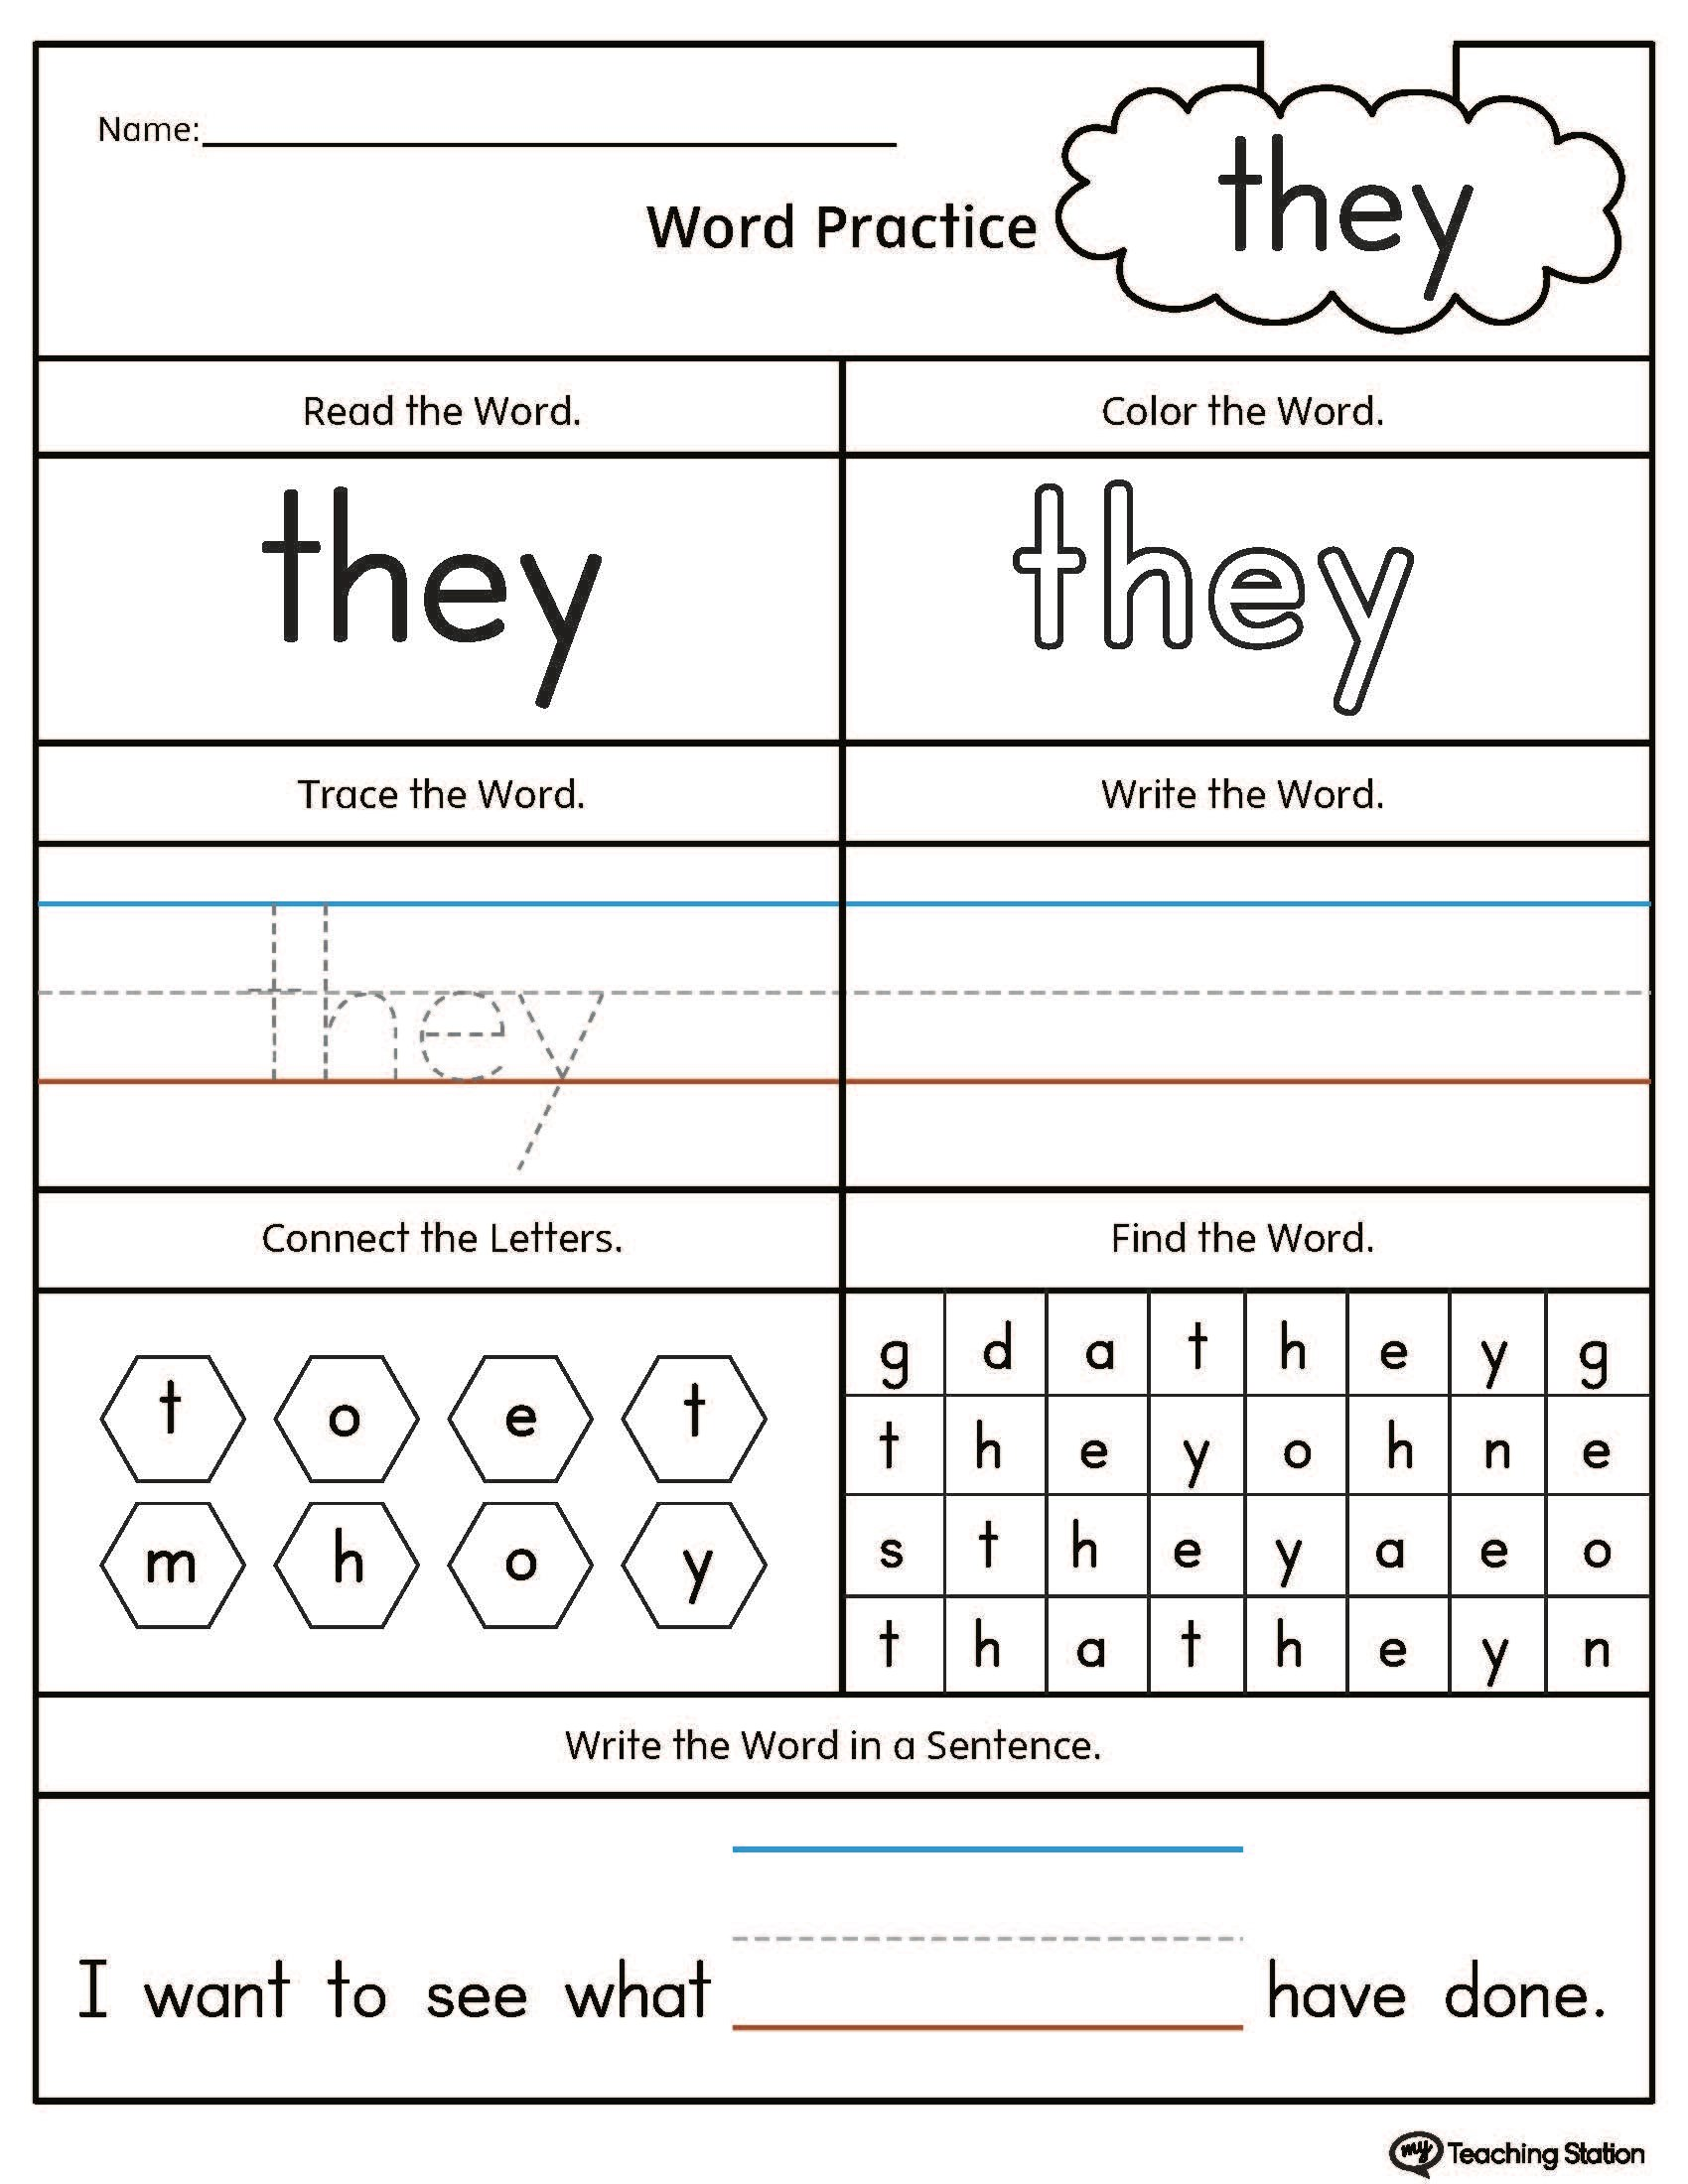 Worksheet On Dge Words